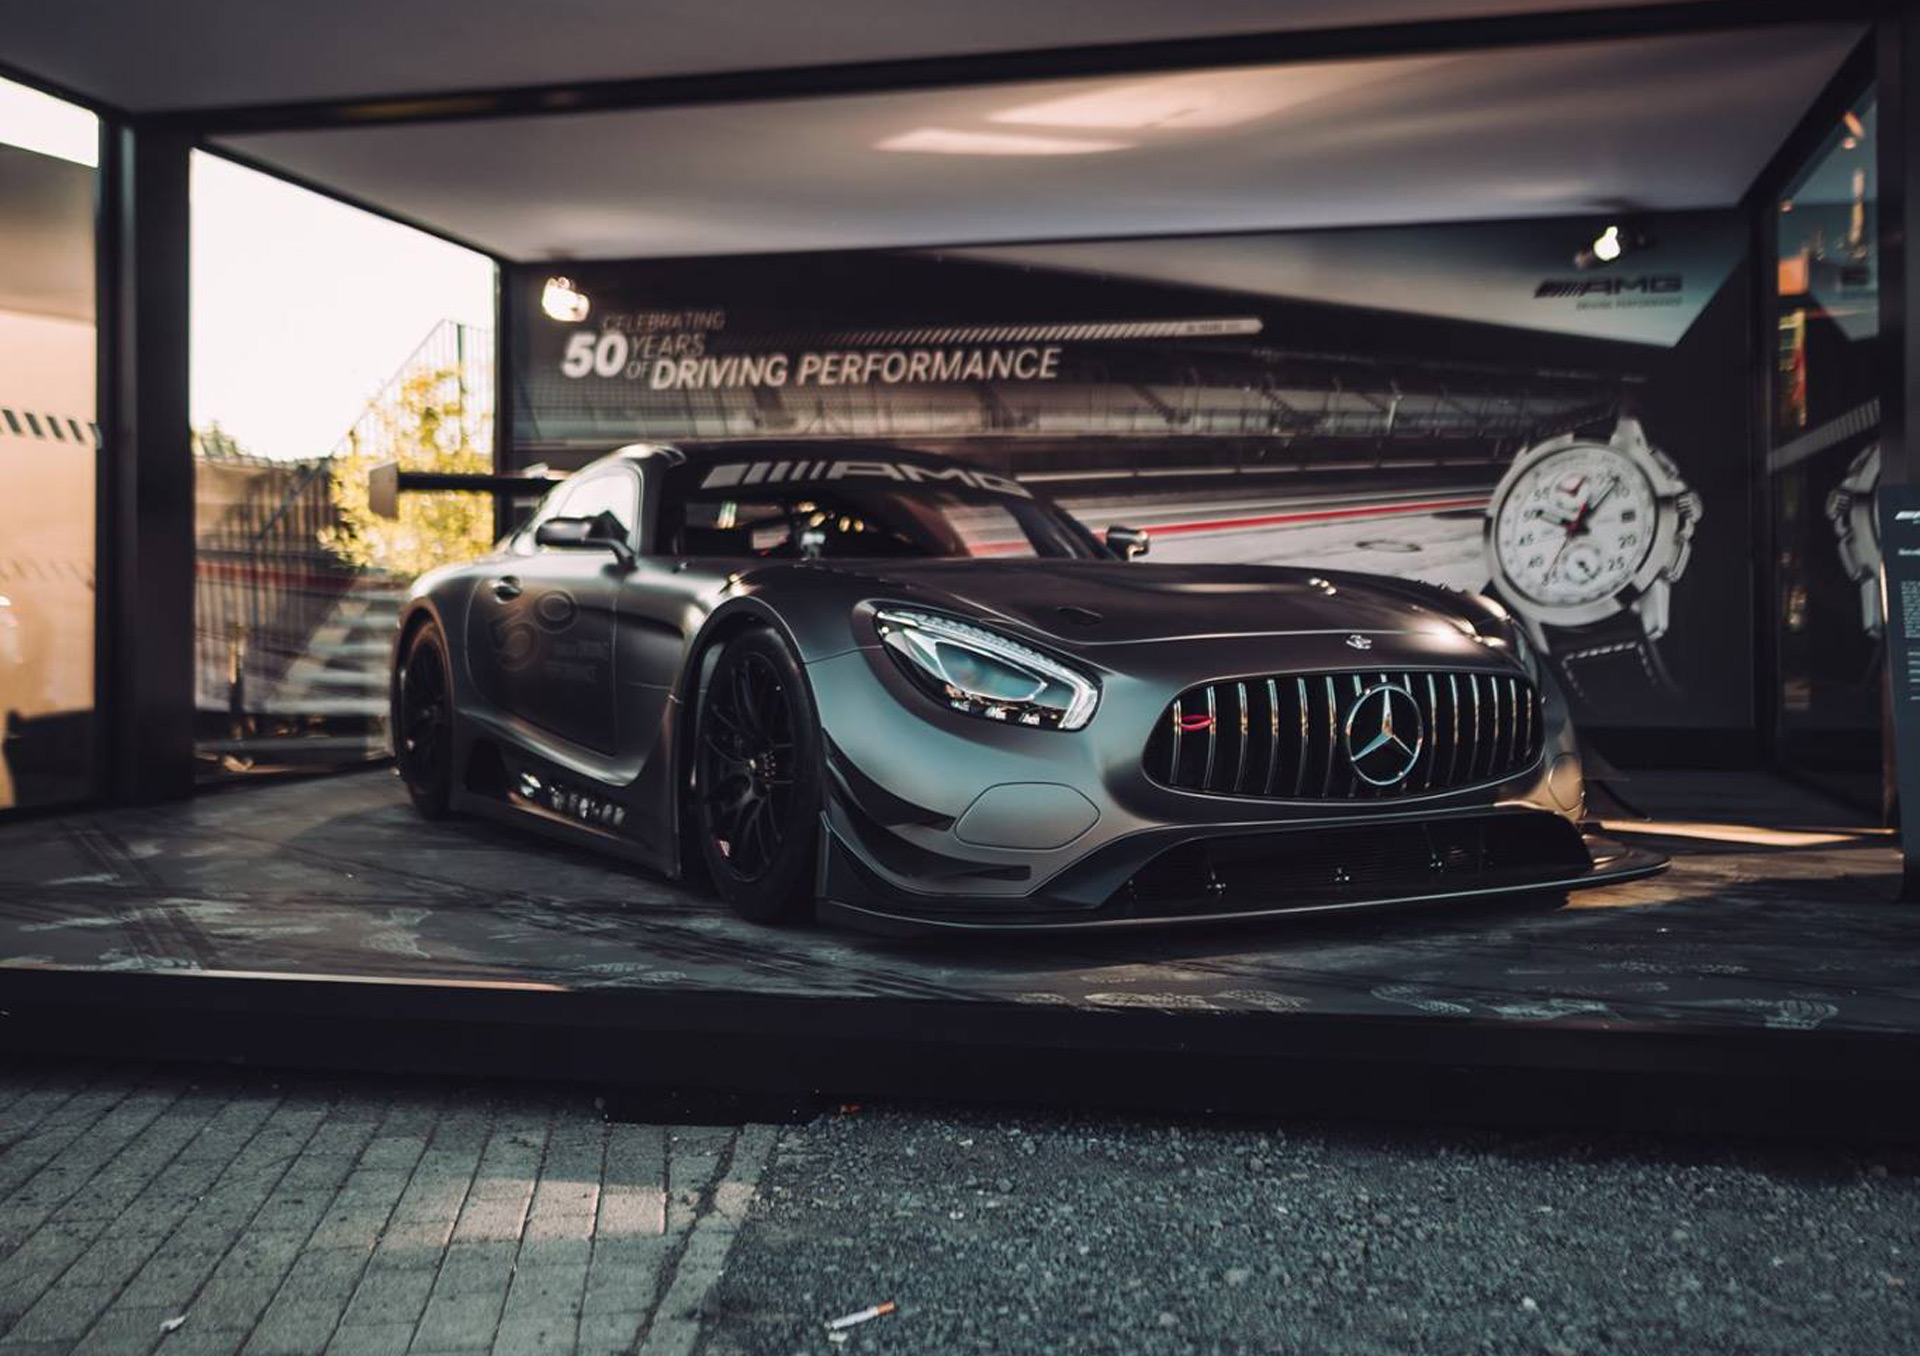 Lincoln Wallpaper Car 2017 Mercedes Amg Gt3 Edition 50 Debuts Limited To 5 Cars